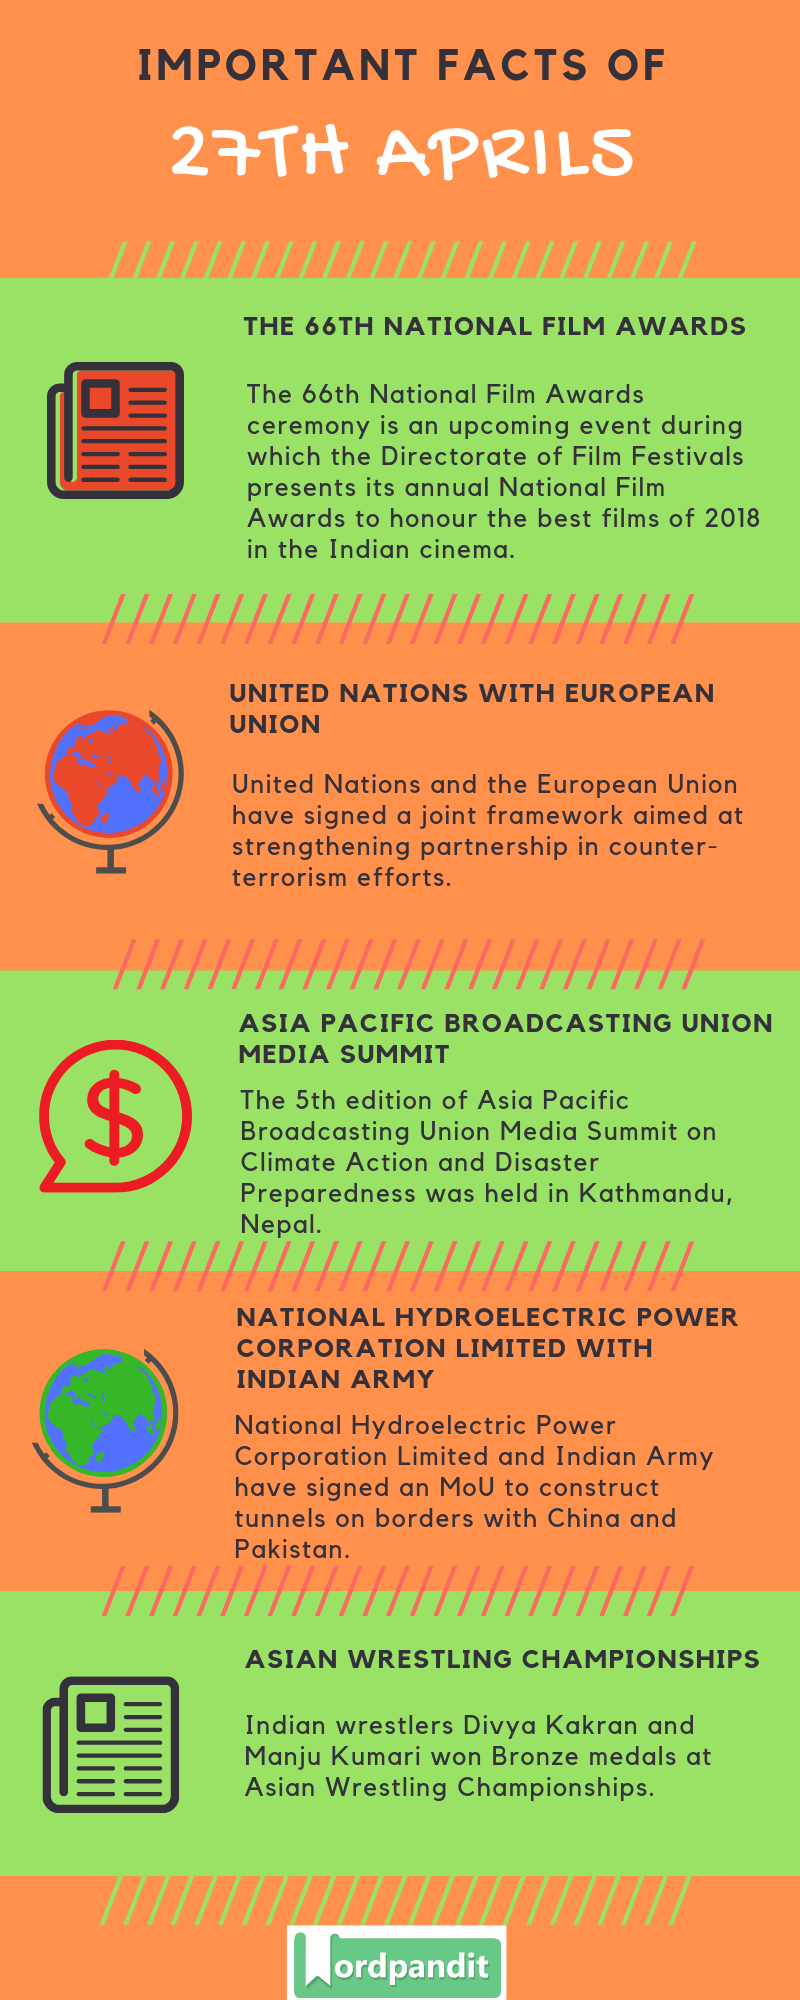 Daily Current Affairs 27 April 2019 Current Affairs Quiz 27 April 2019 Current Affairs Infographic